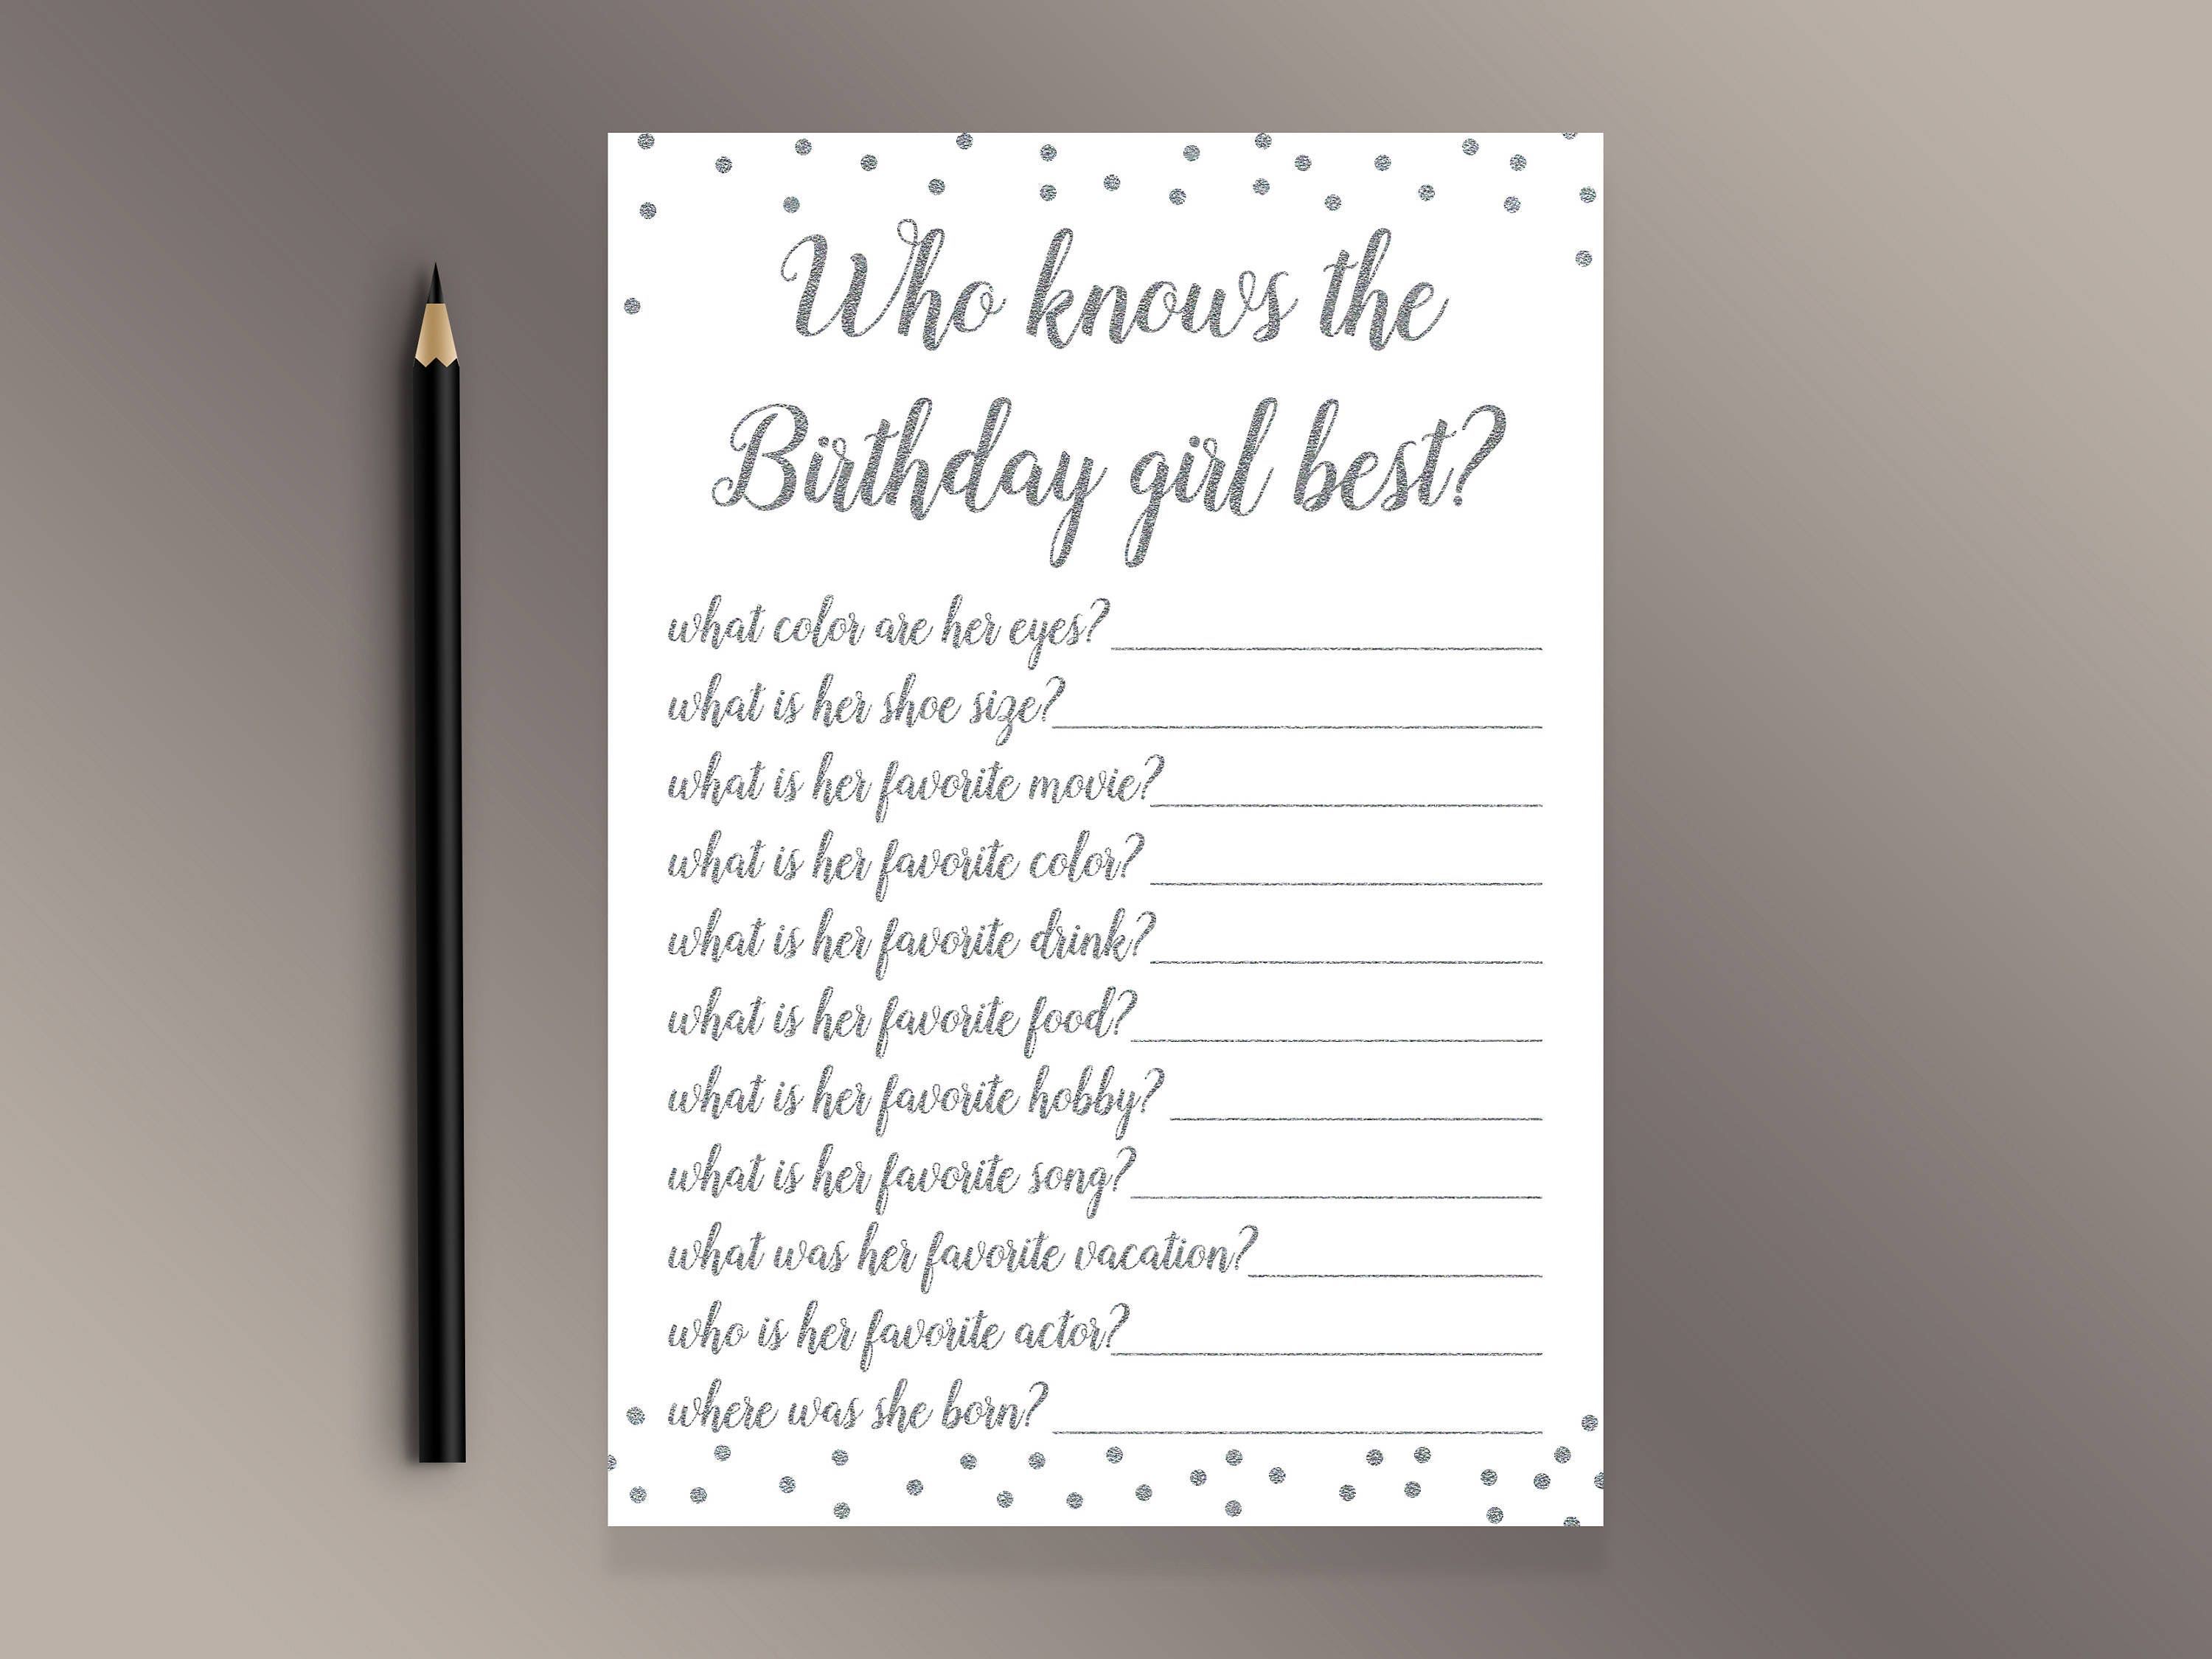 a515f543e15b Who knows the Birthday girl best Funny Birthday party games